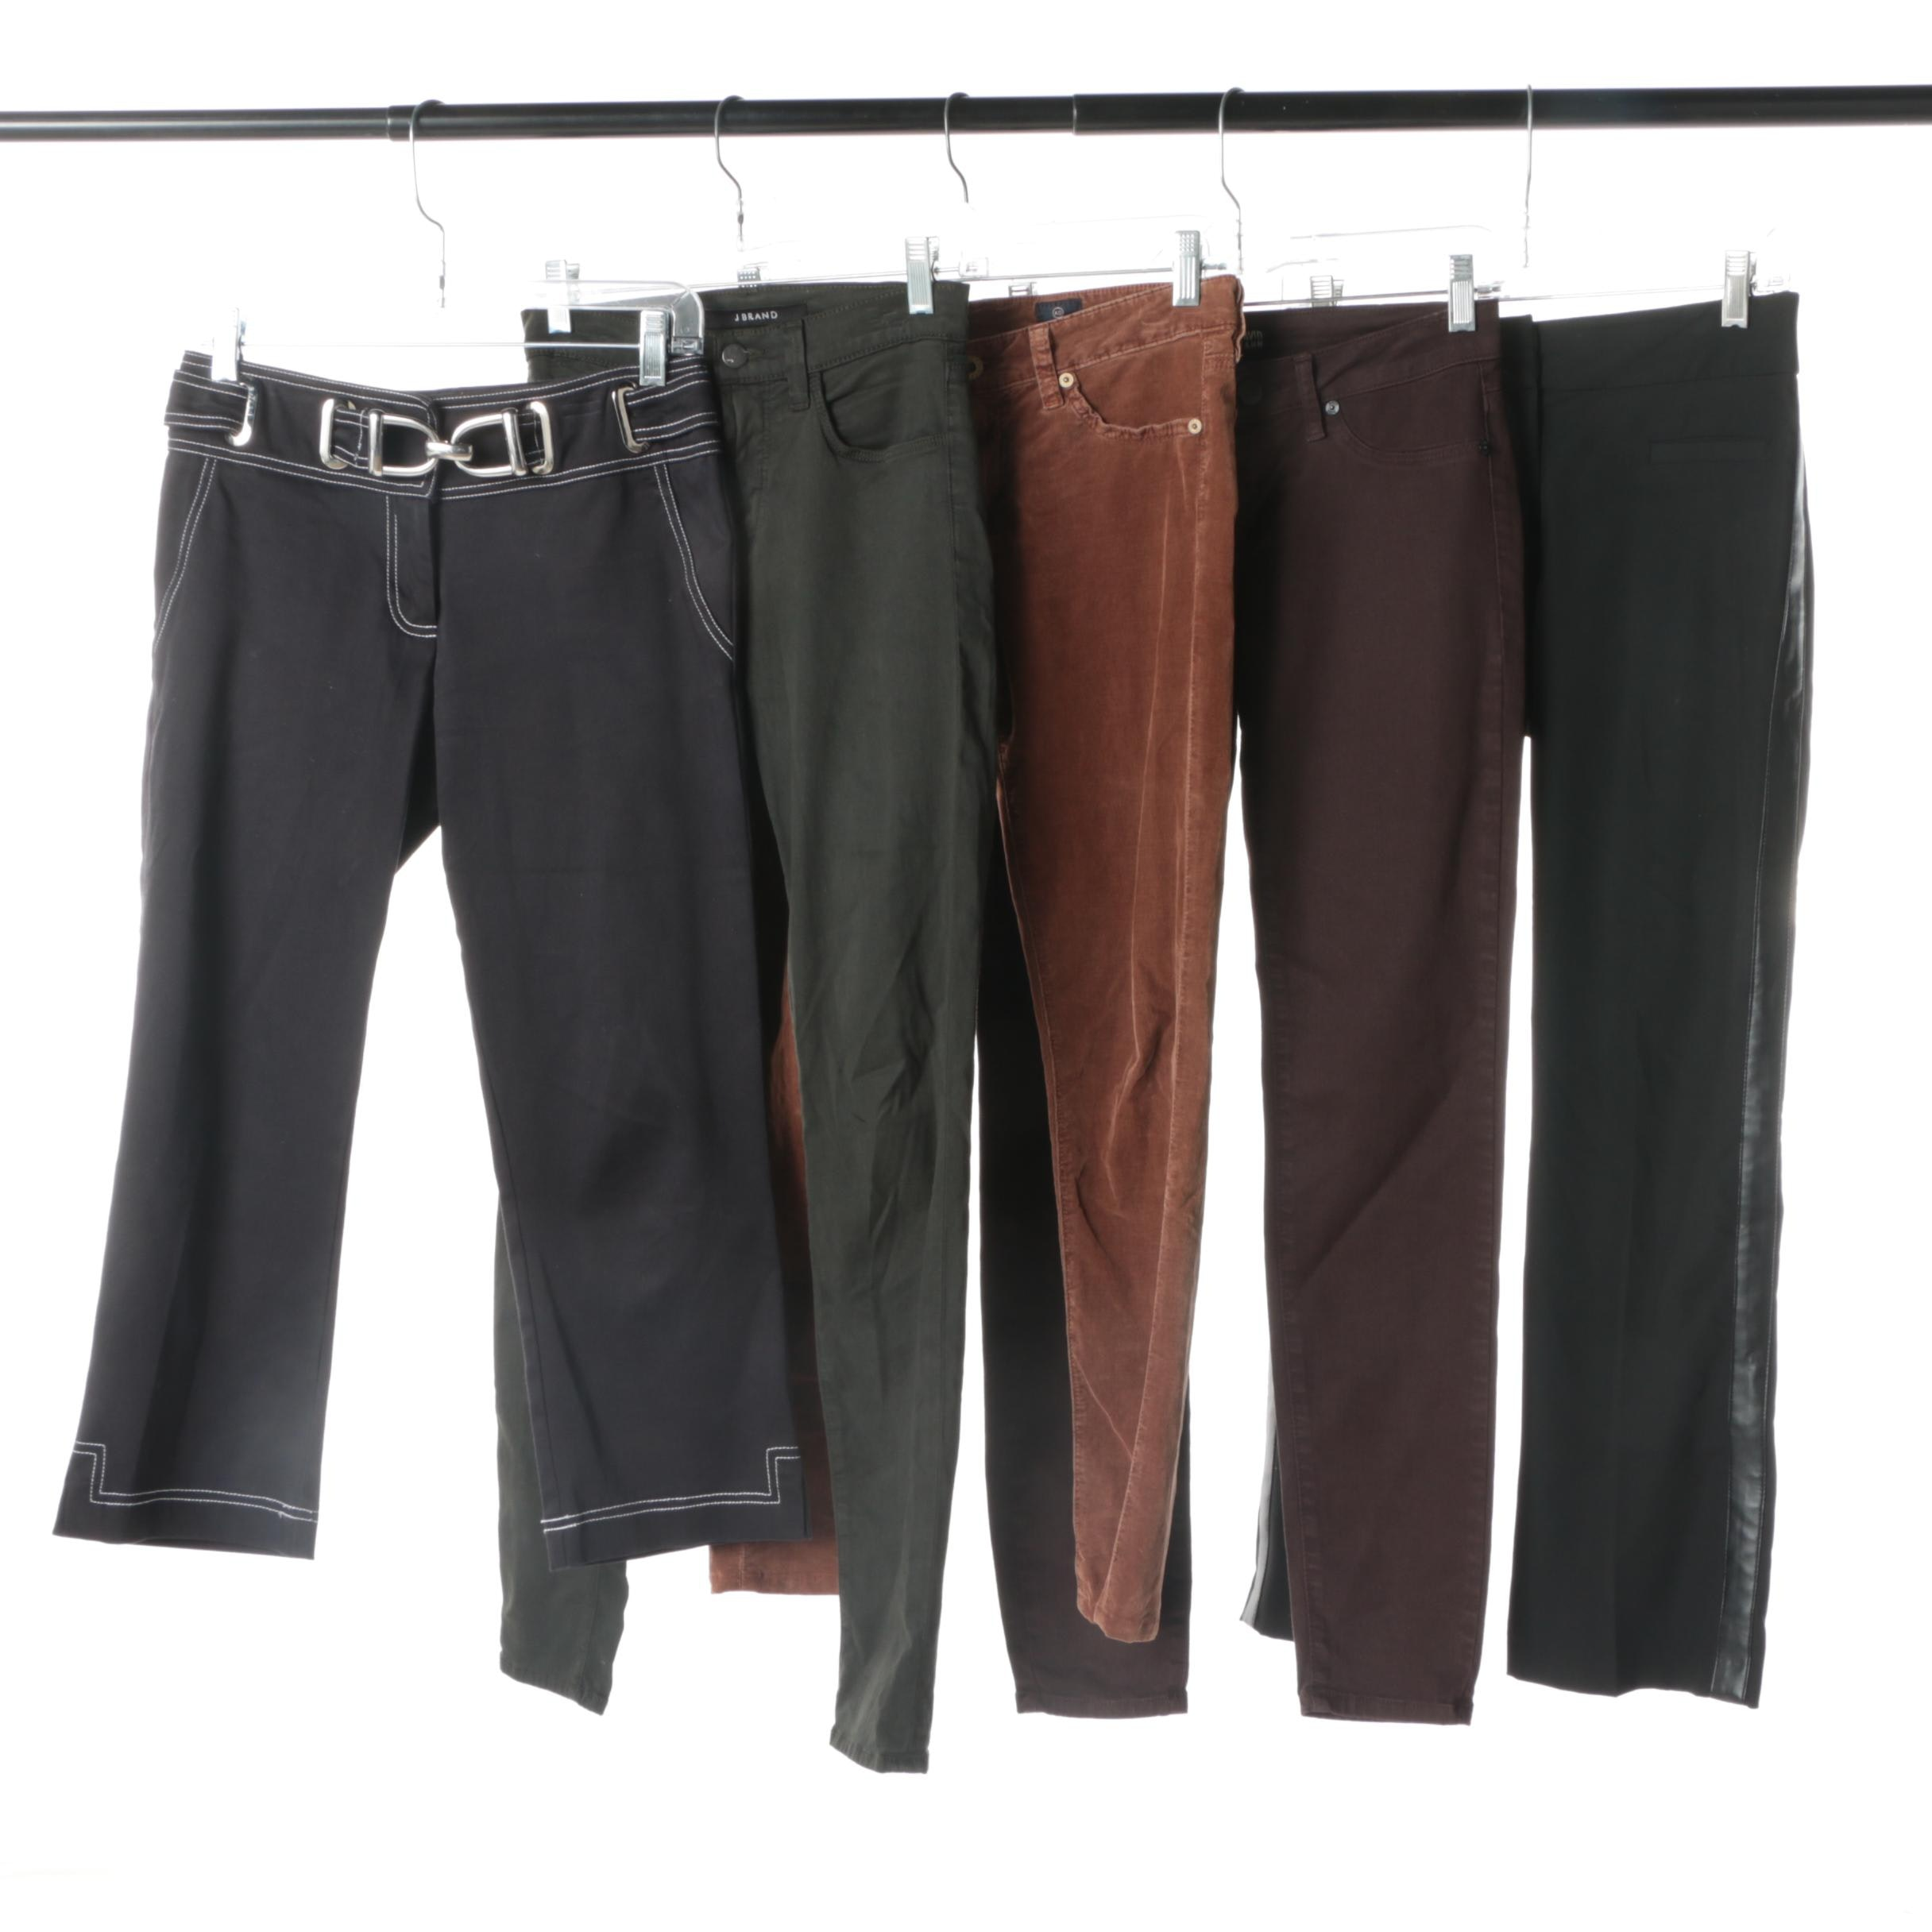 Women's Pants Including Adriano Goldschmied, and David Kahn